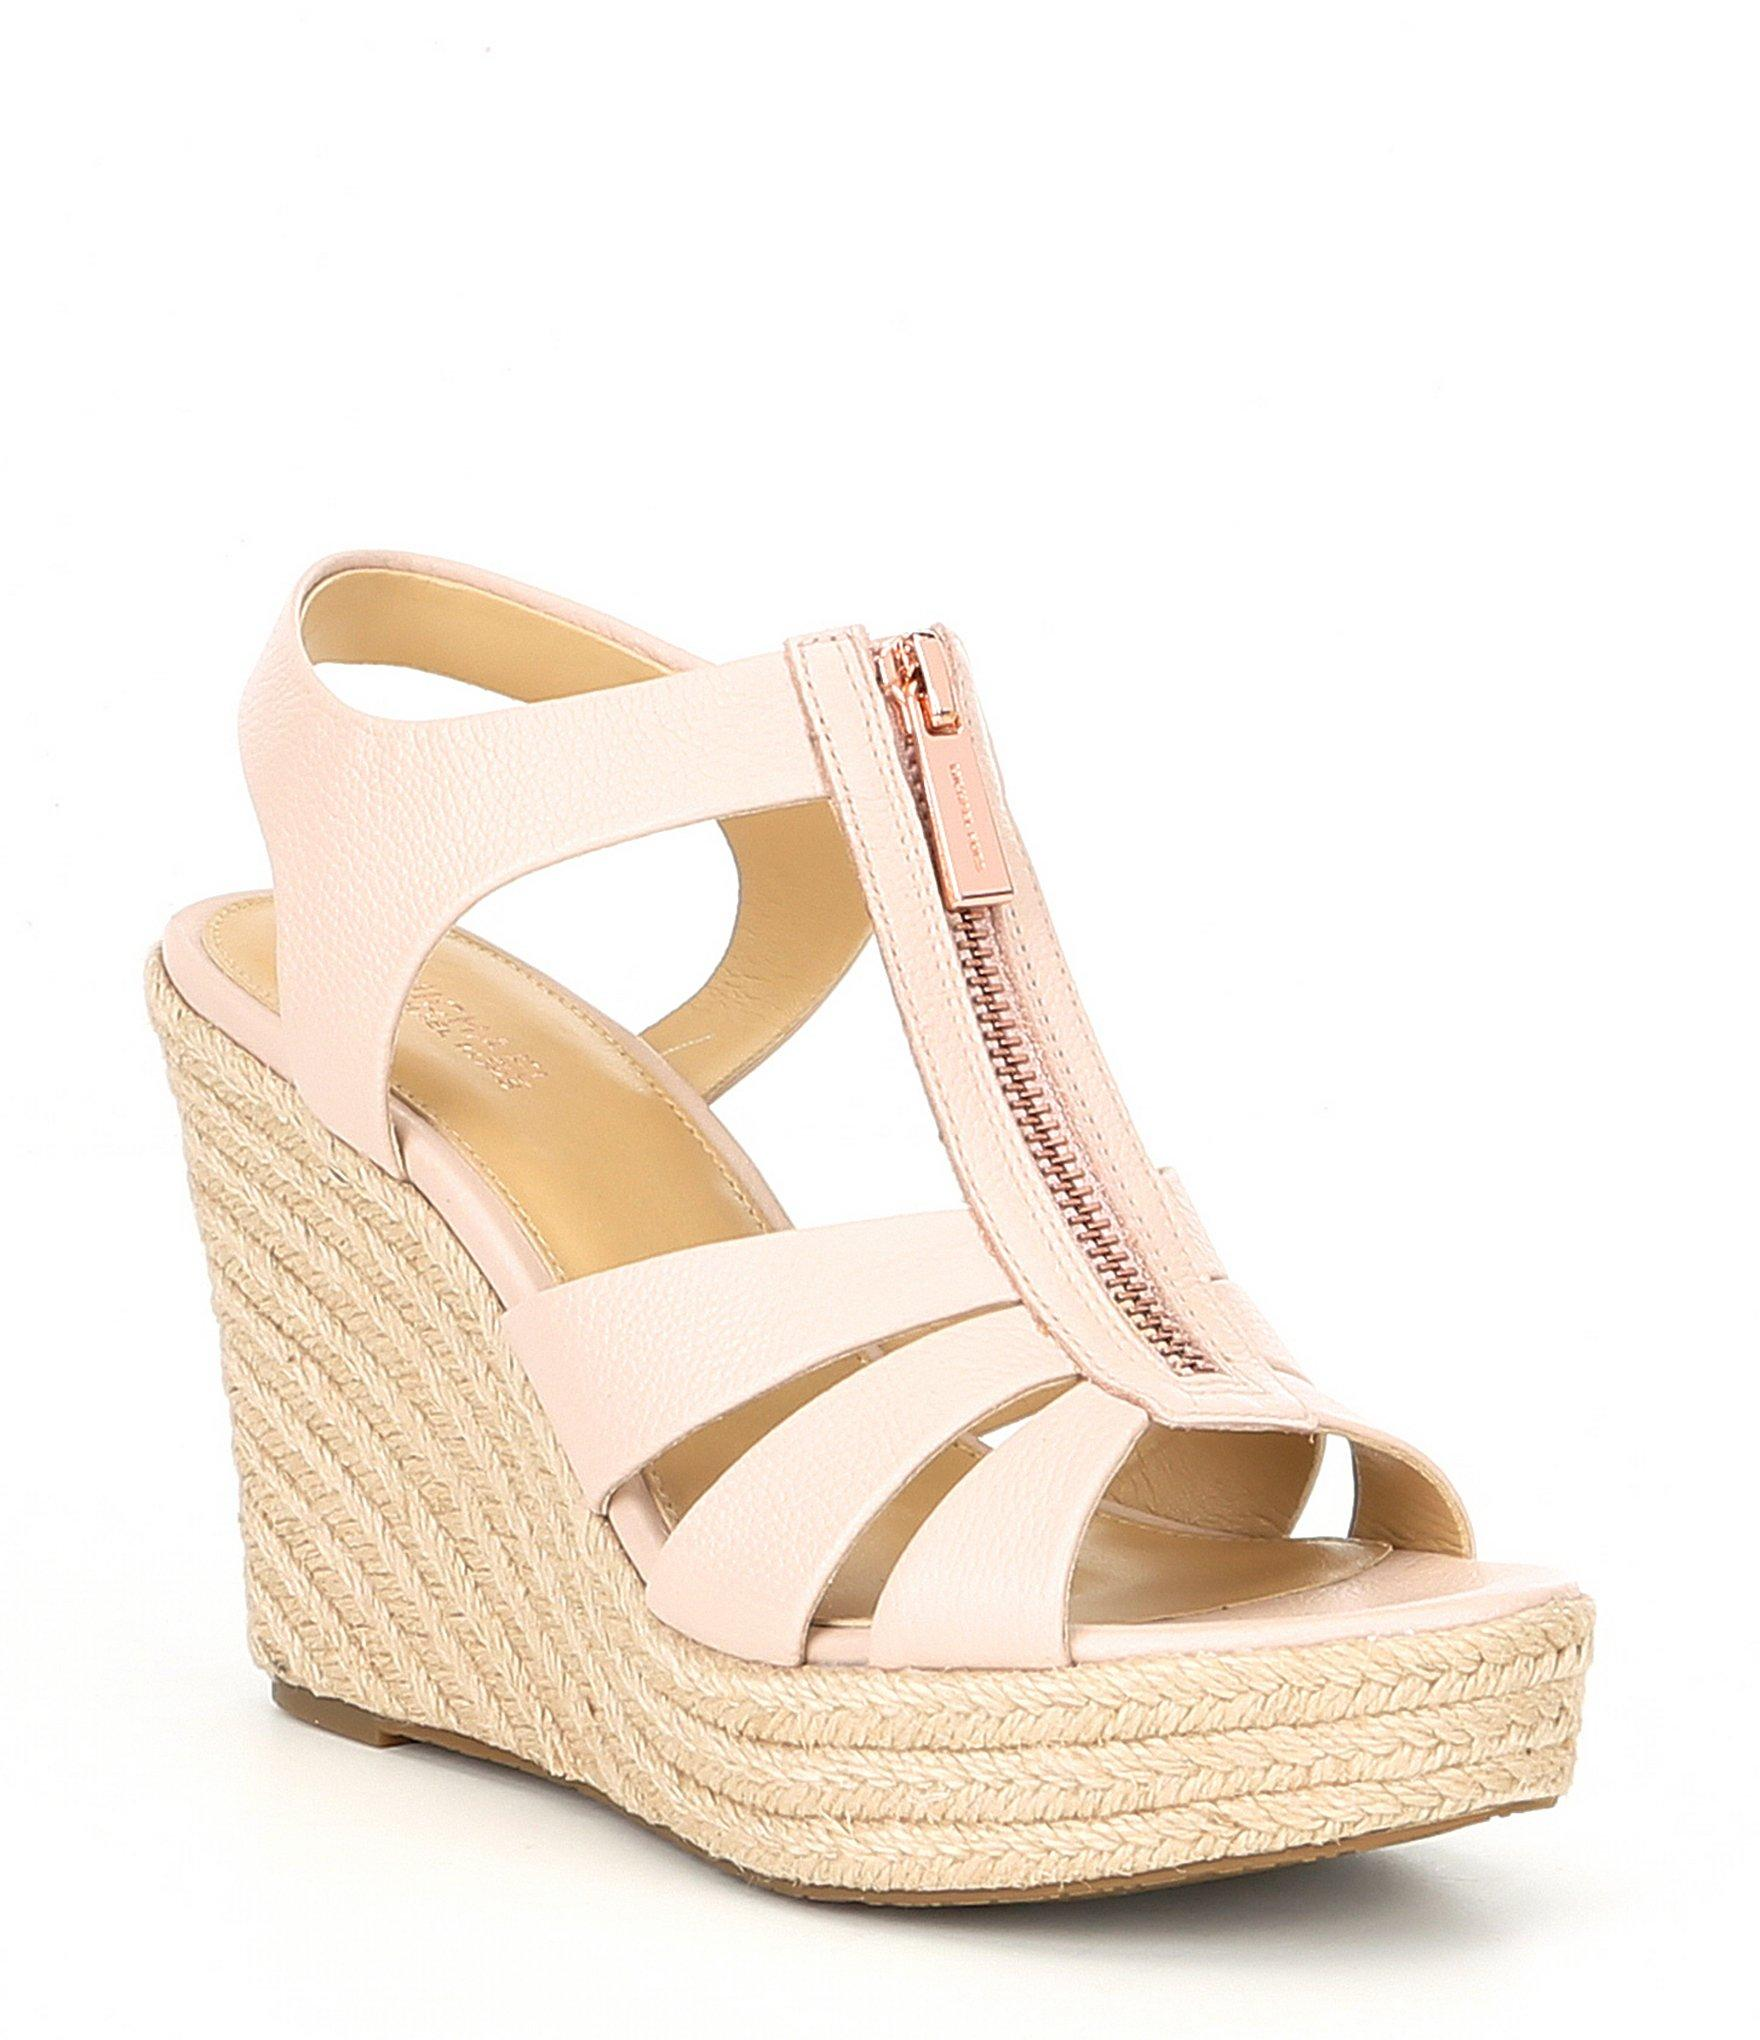 985b026cdcc Lyst - Michael Michael Kors Berkley Espadrille Wedge Sandals in Pink